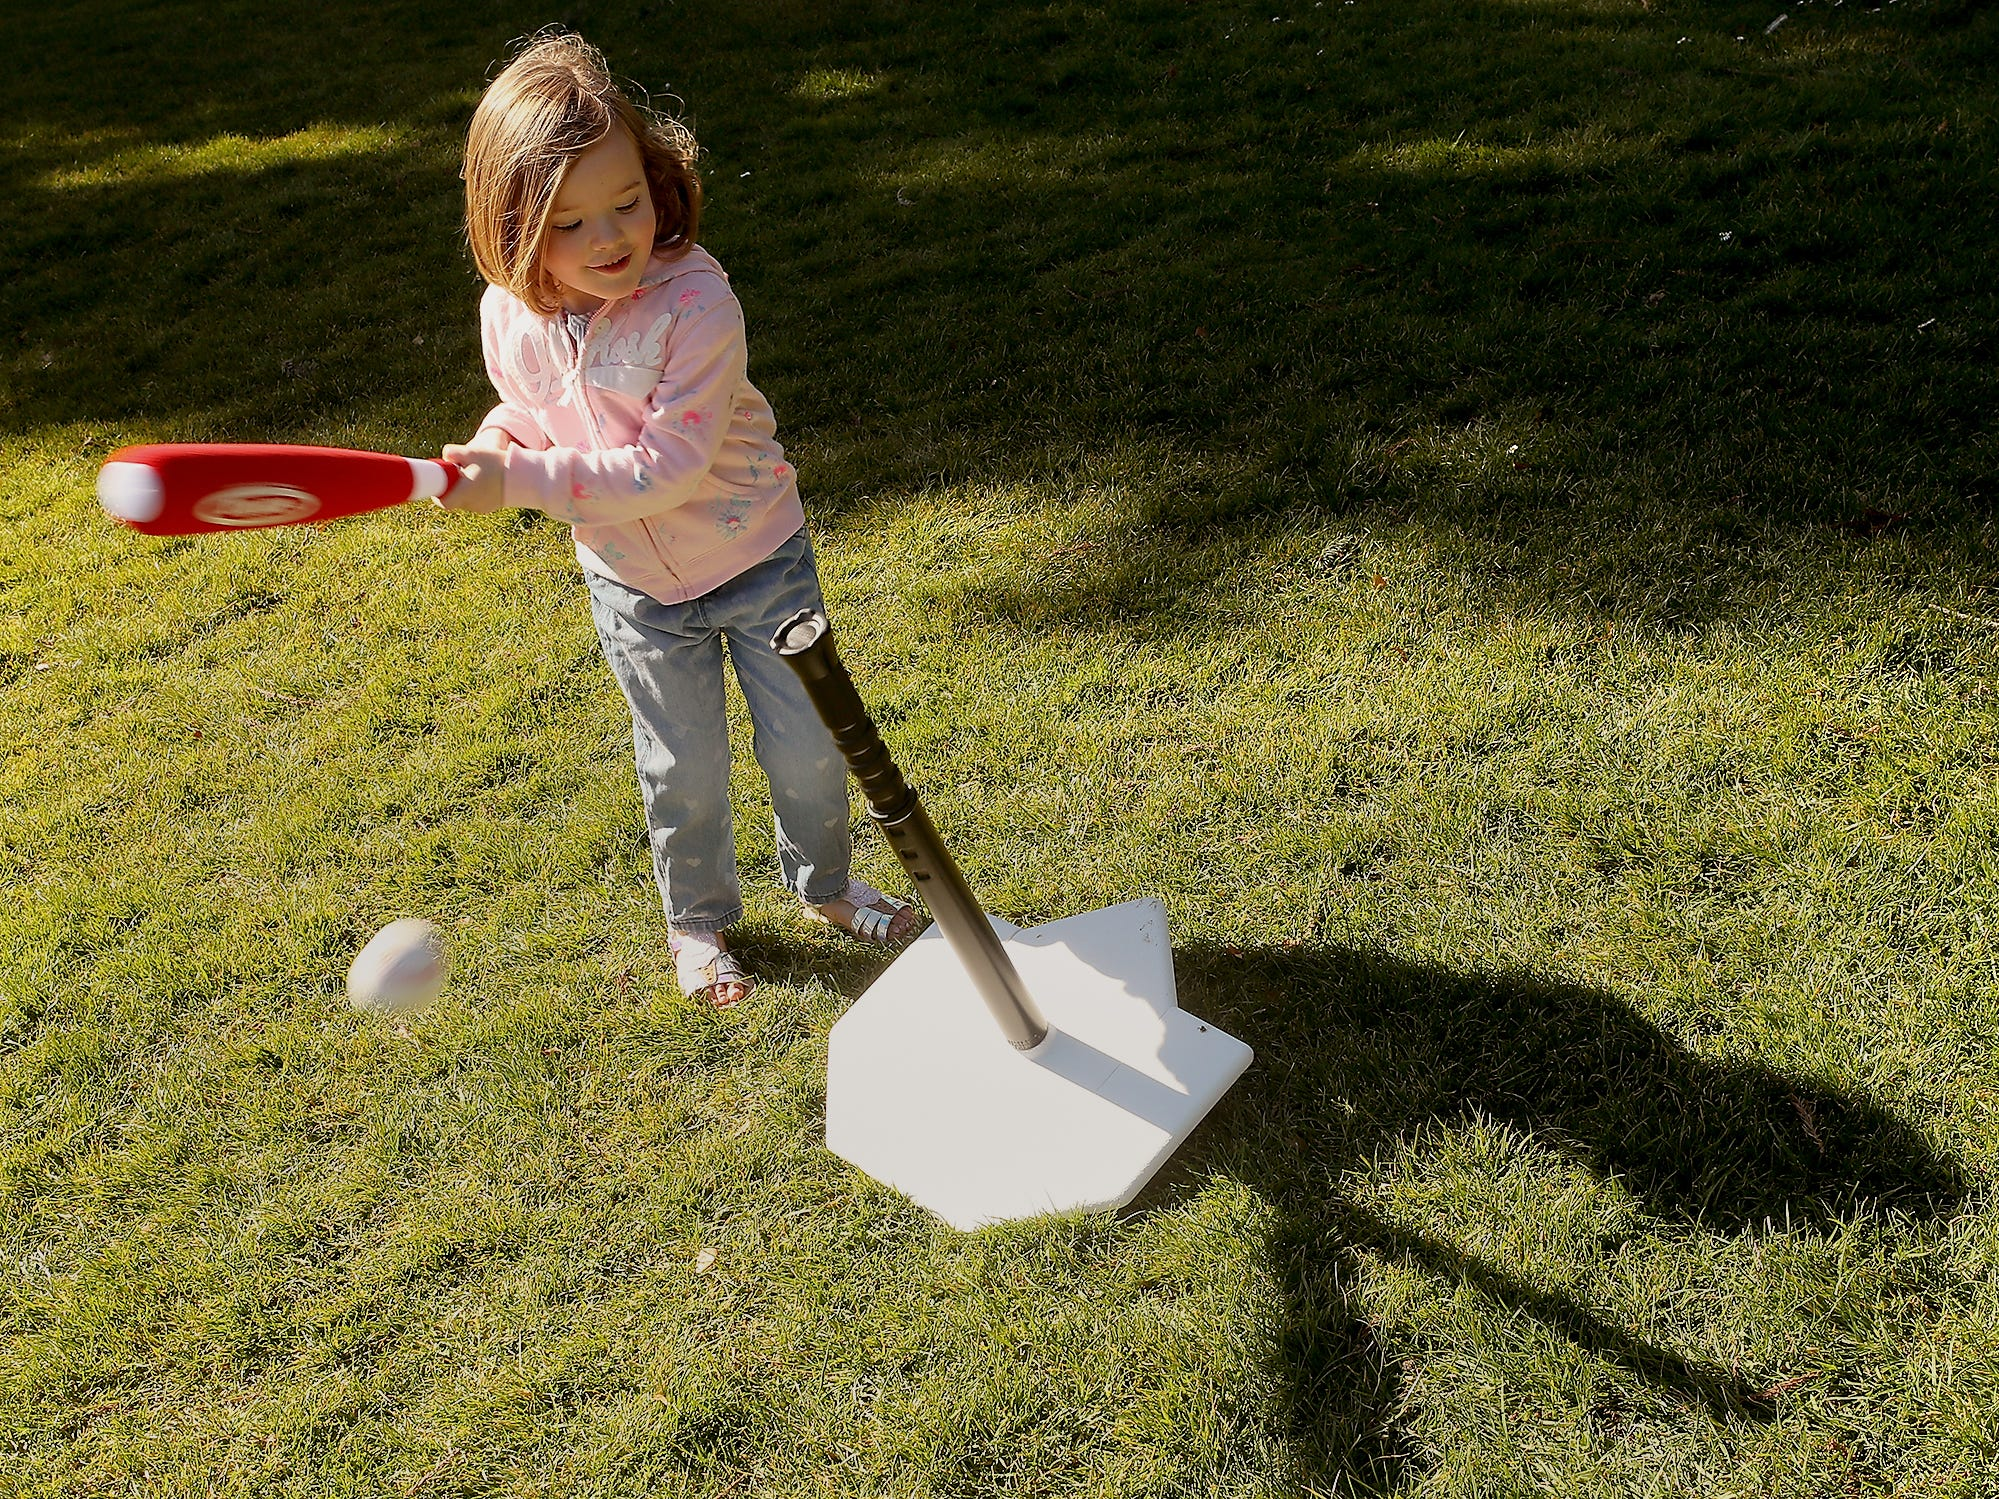 Natalie Voorhies, 3, bats with her T-Ball set as she and her mother Lisa take advantage of the nice weather at Evergreen Rotary Park in Bremerton on Monday, March 18, 2019.